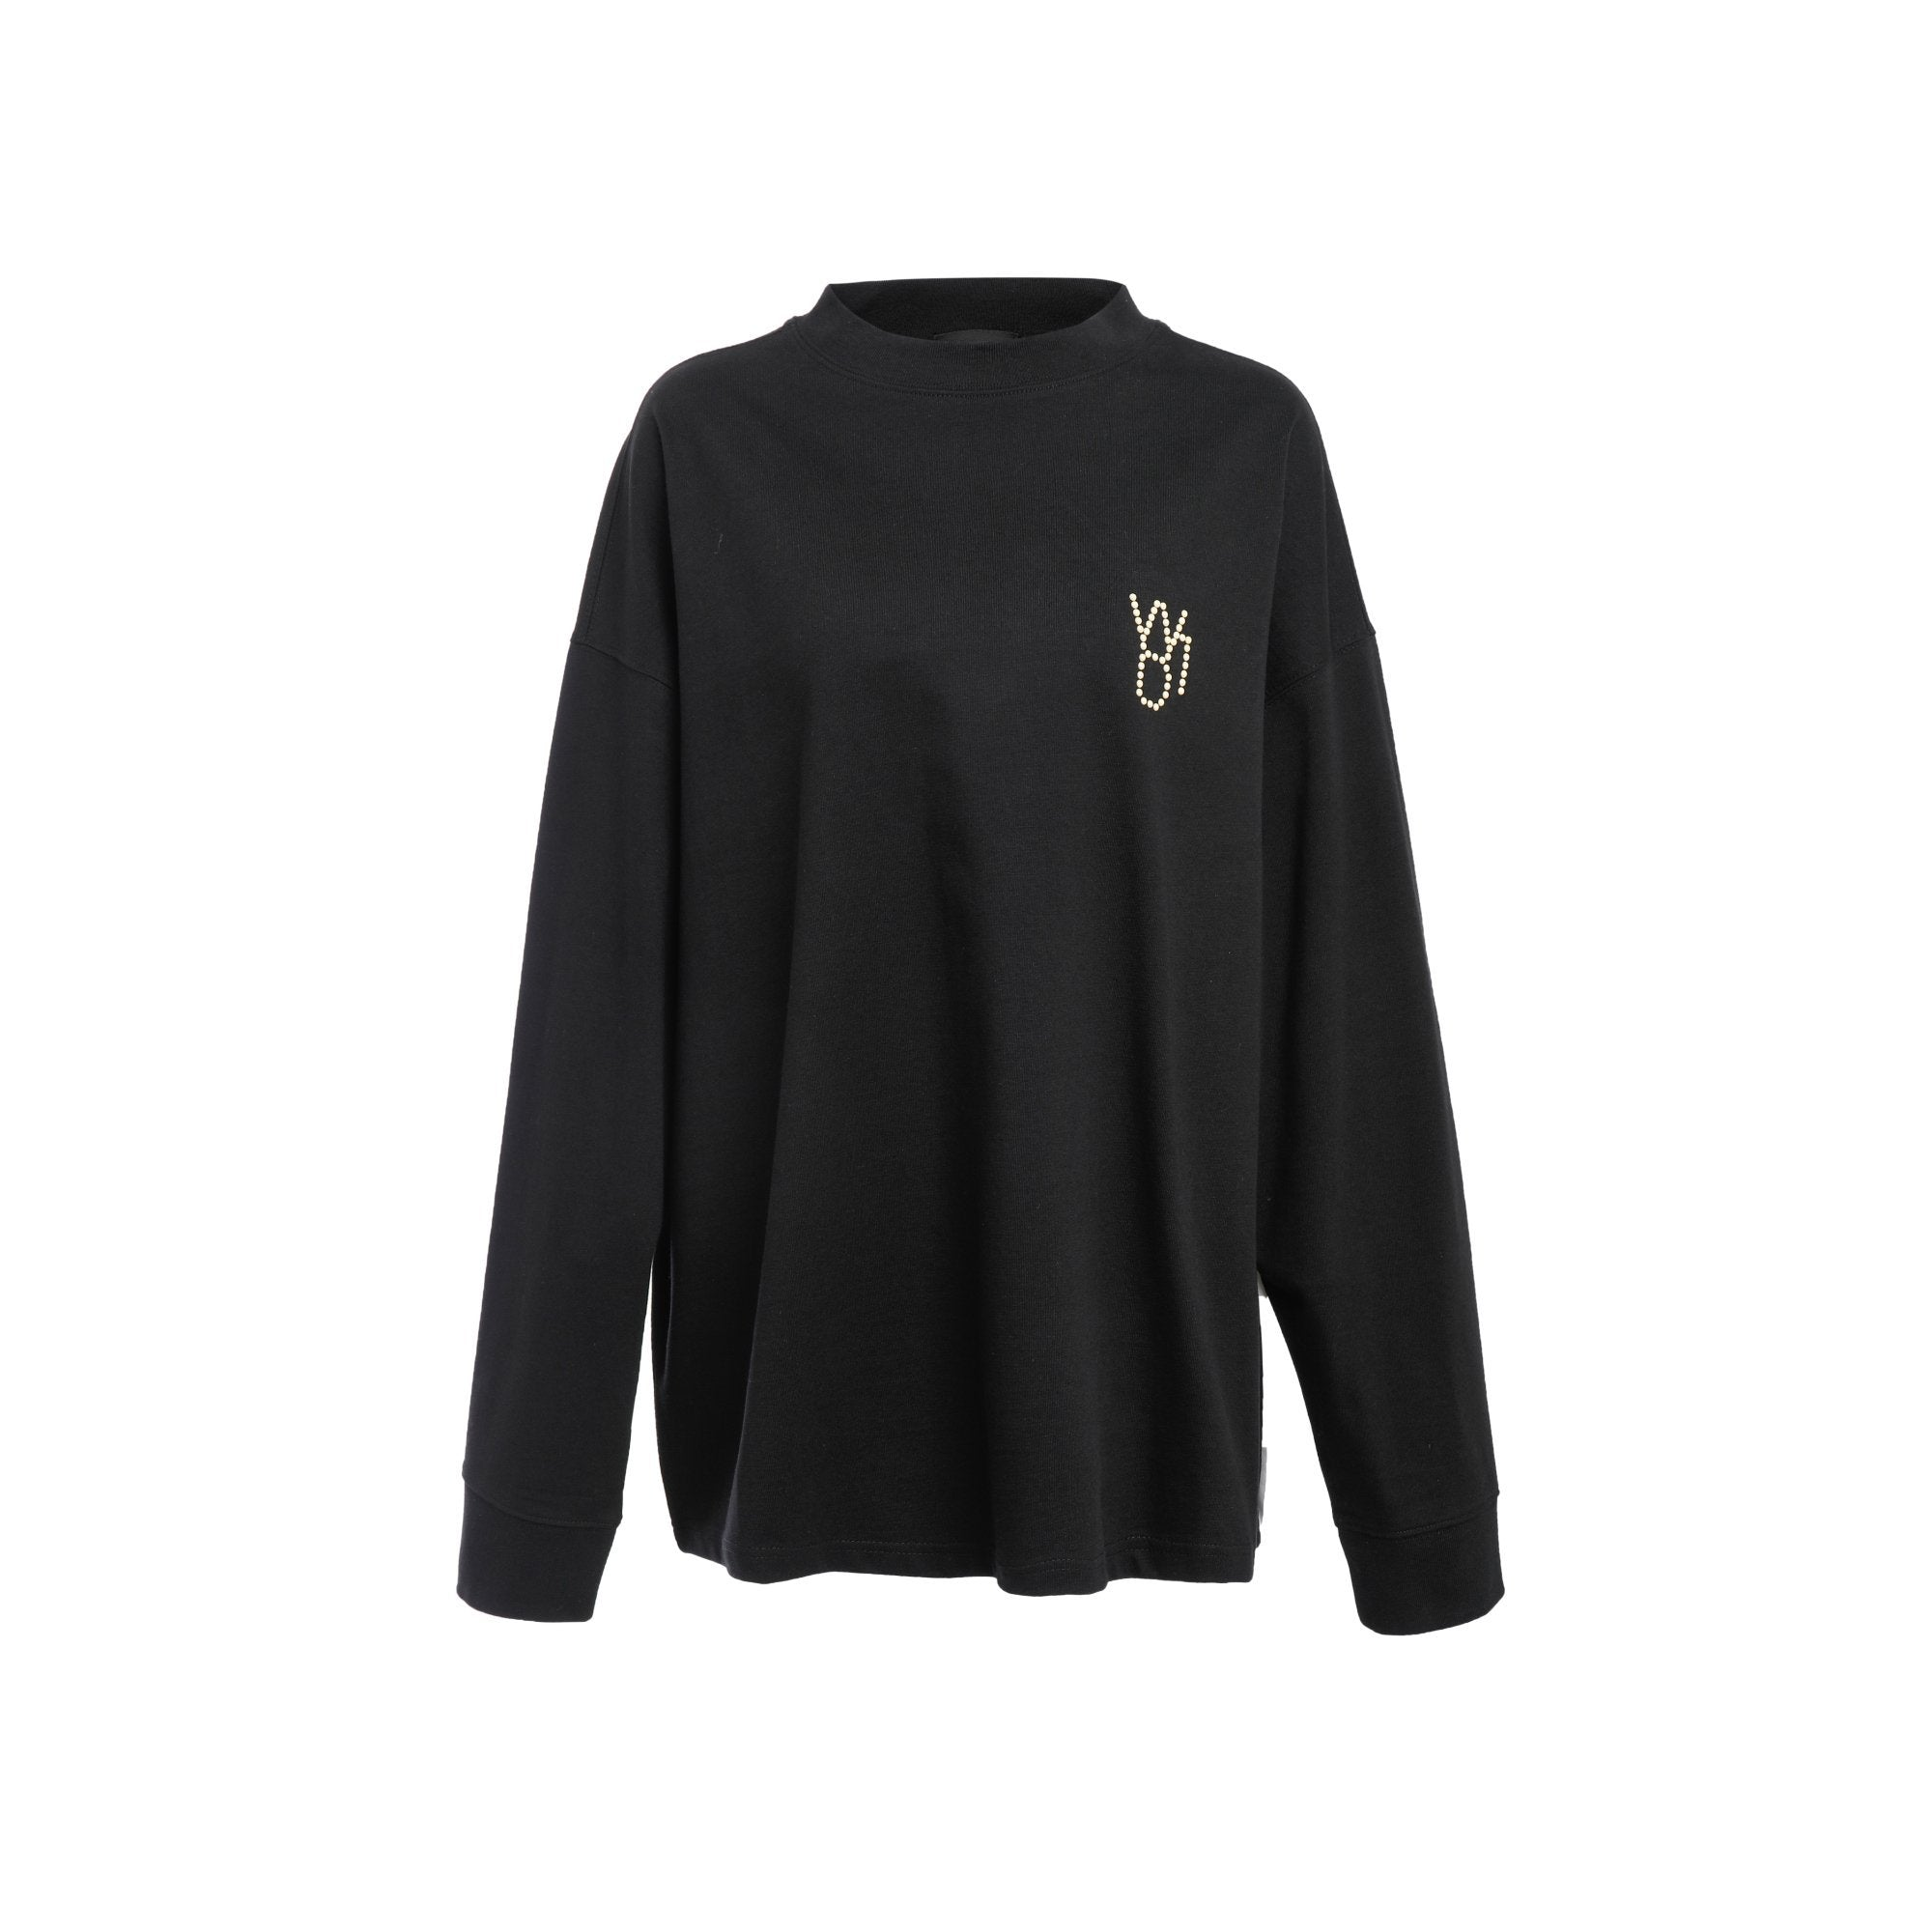 WE11DONE Black Pearl Logo Long Sleeve T-Shirt | MADA IN CHINA